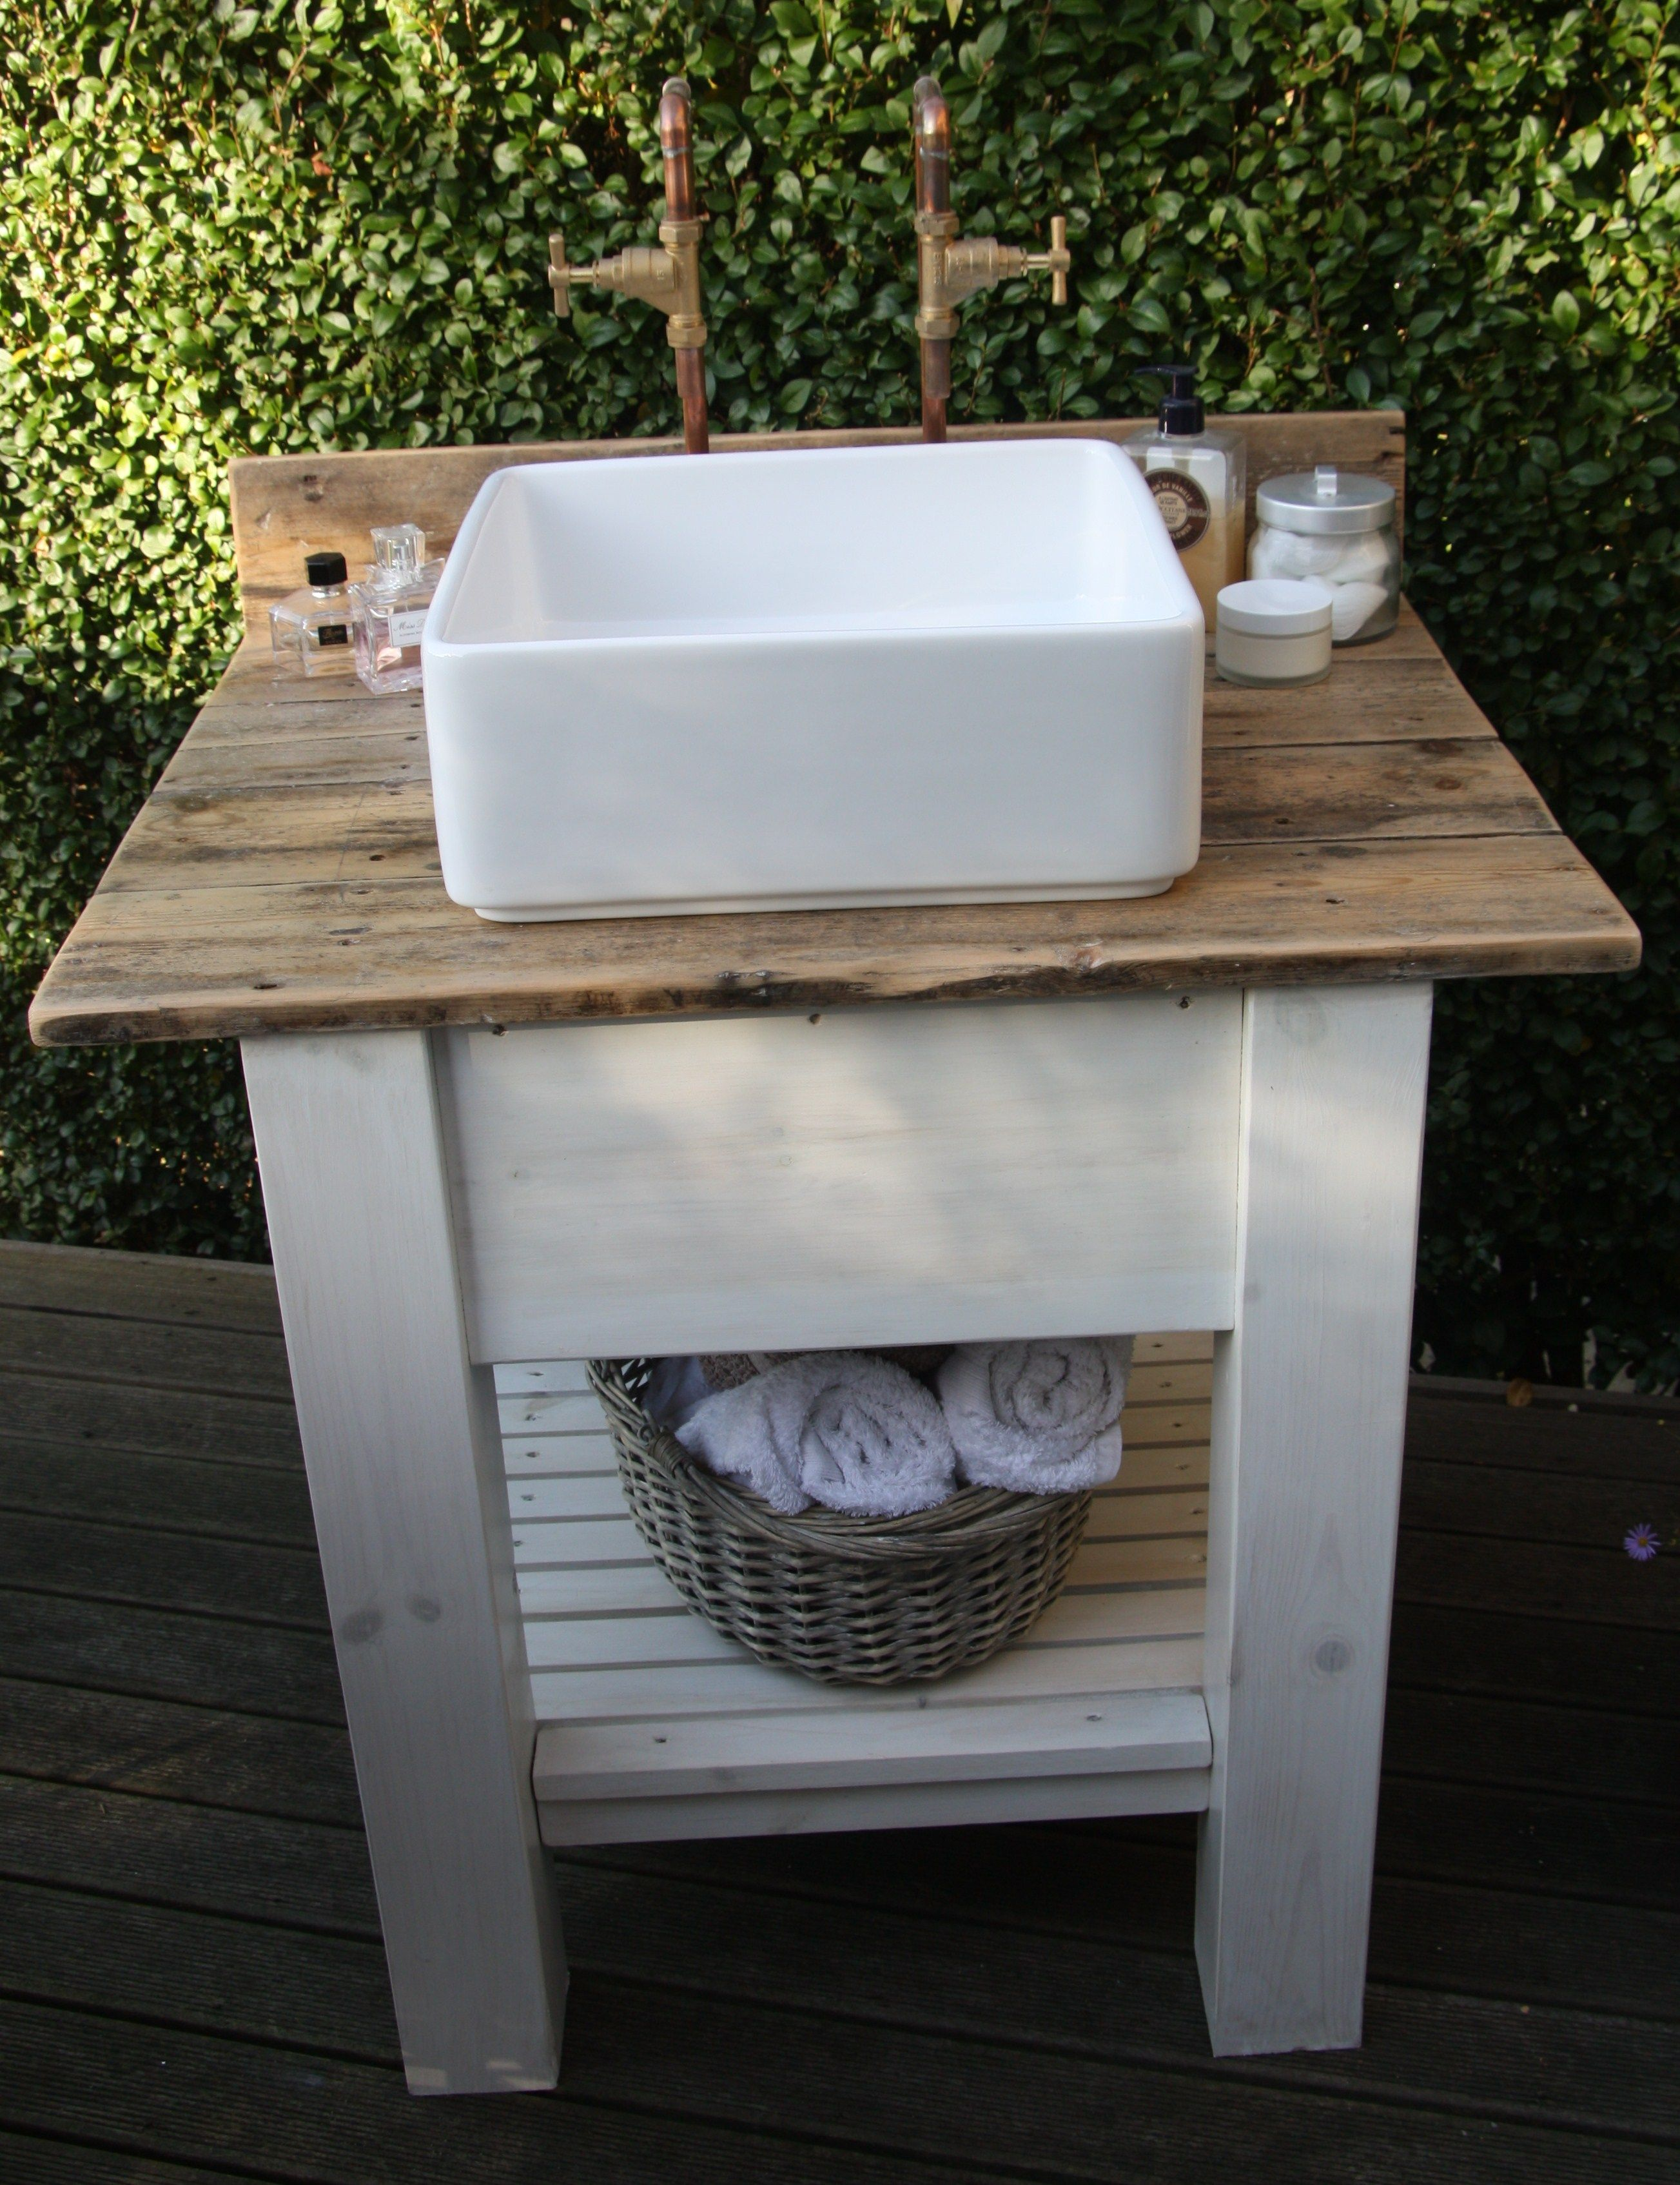 Upcycled worktop, chunky basin and industrial taps.  Funky bathroom unit made by The LRC!